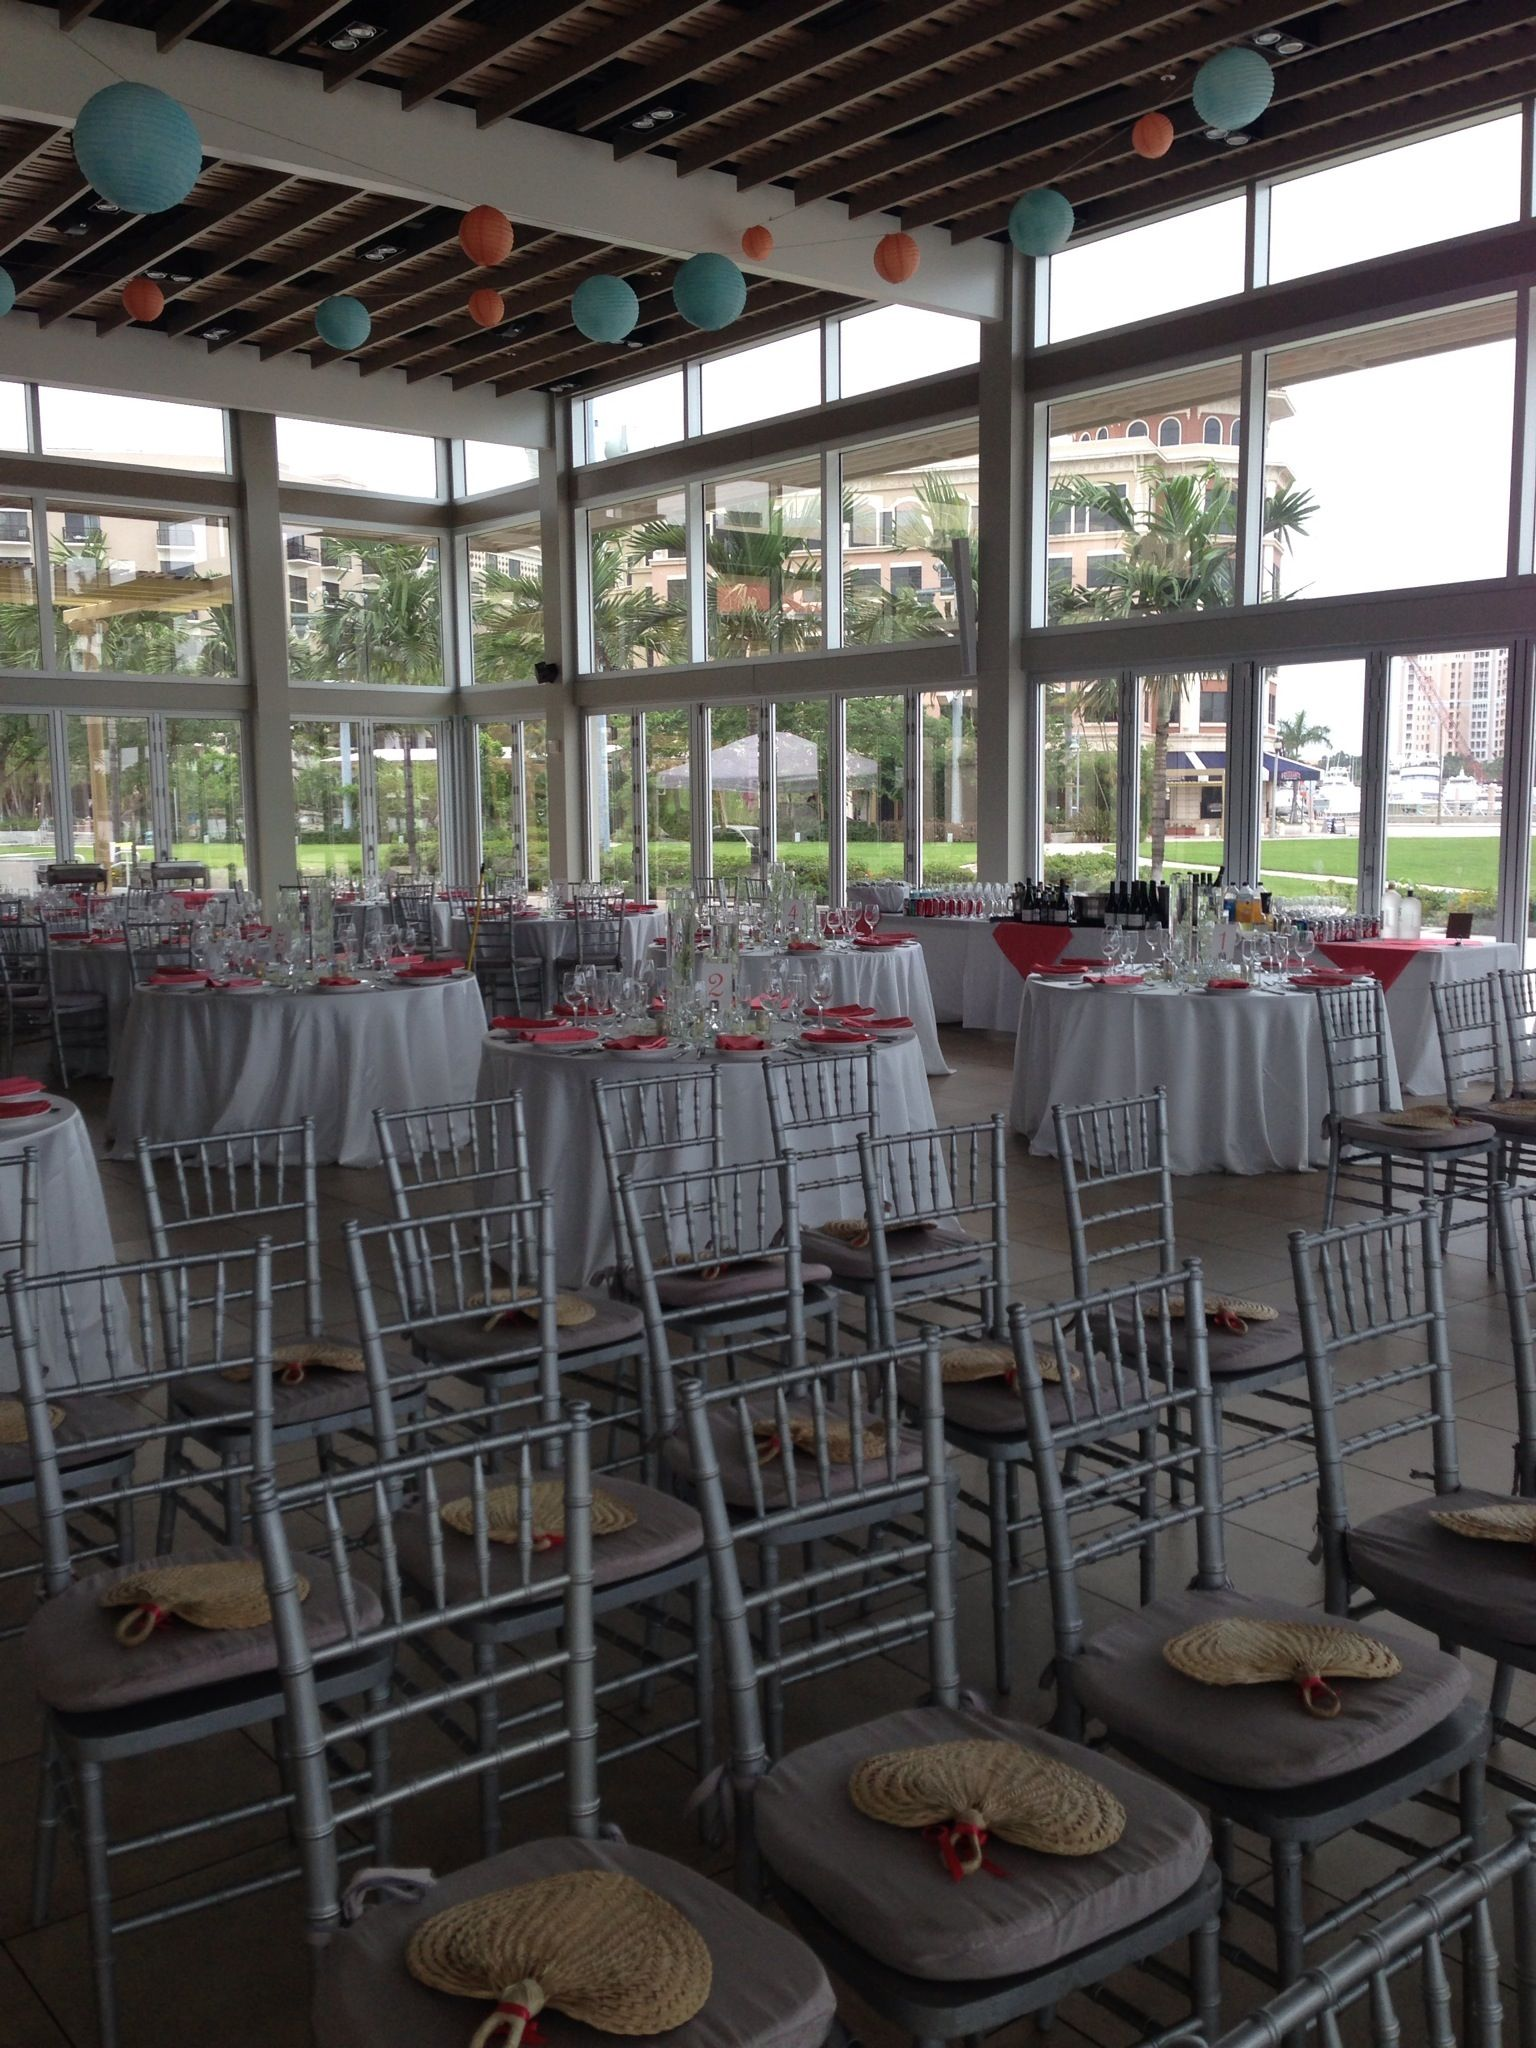 West Palm Beach Lake Pavilion Wedding By The Majestic Vision Planning Weddings In FL And Milwaukee WI